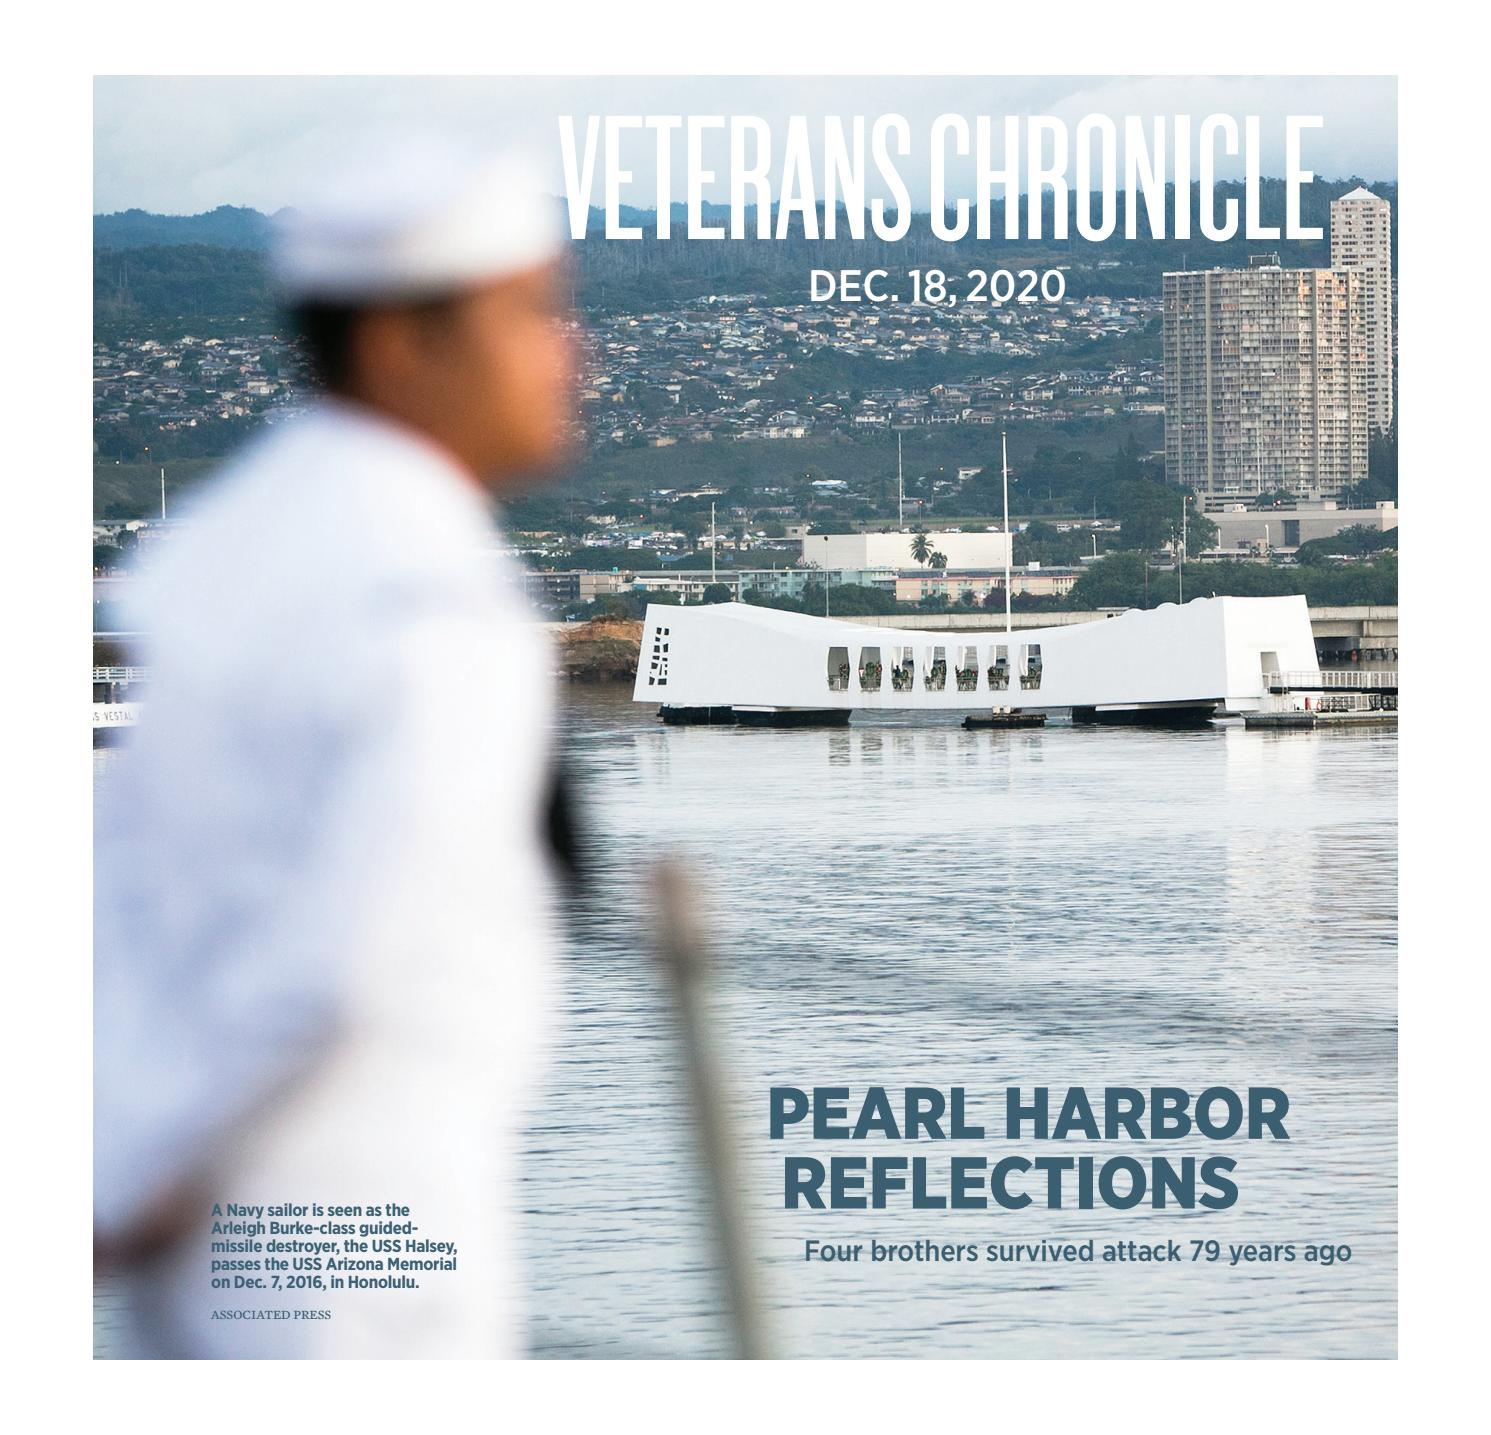 Veterans Chronicle December 18, 2020